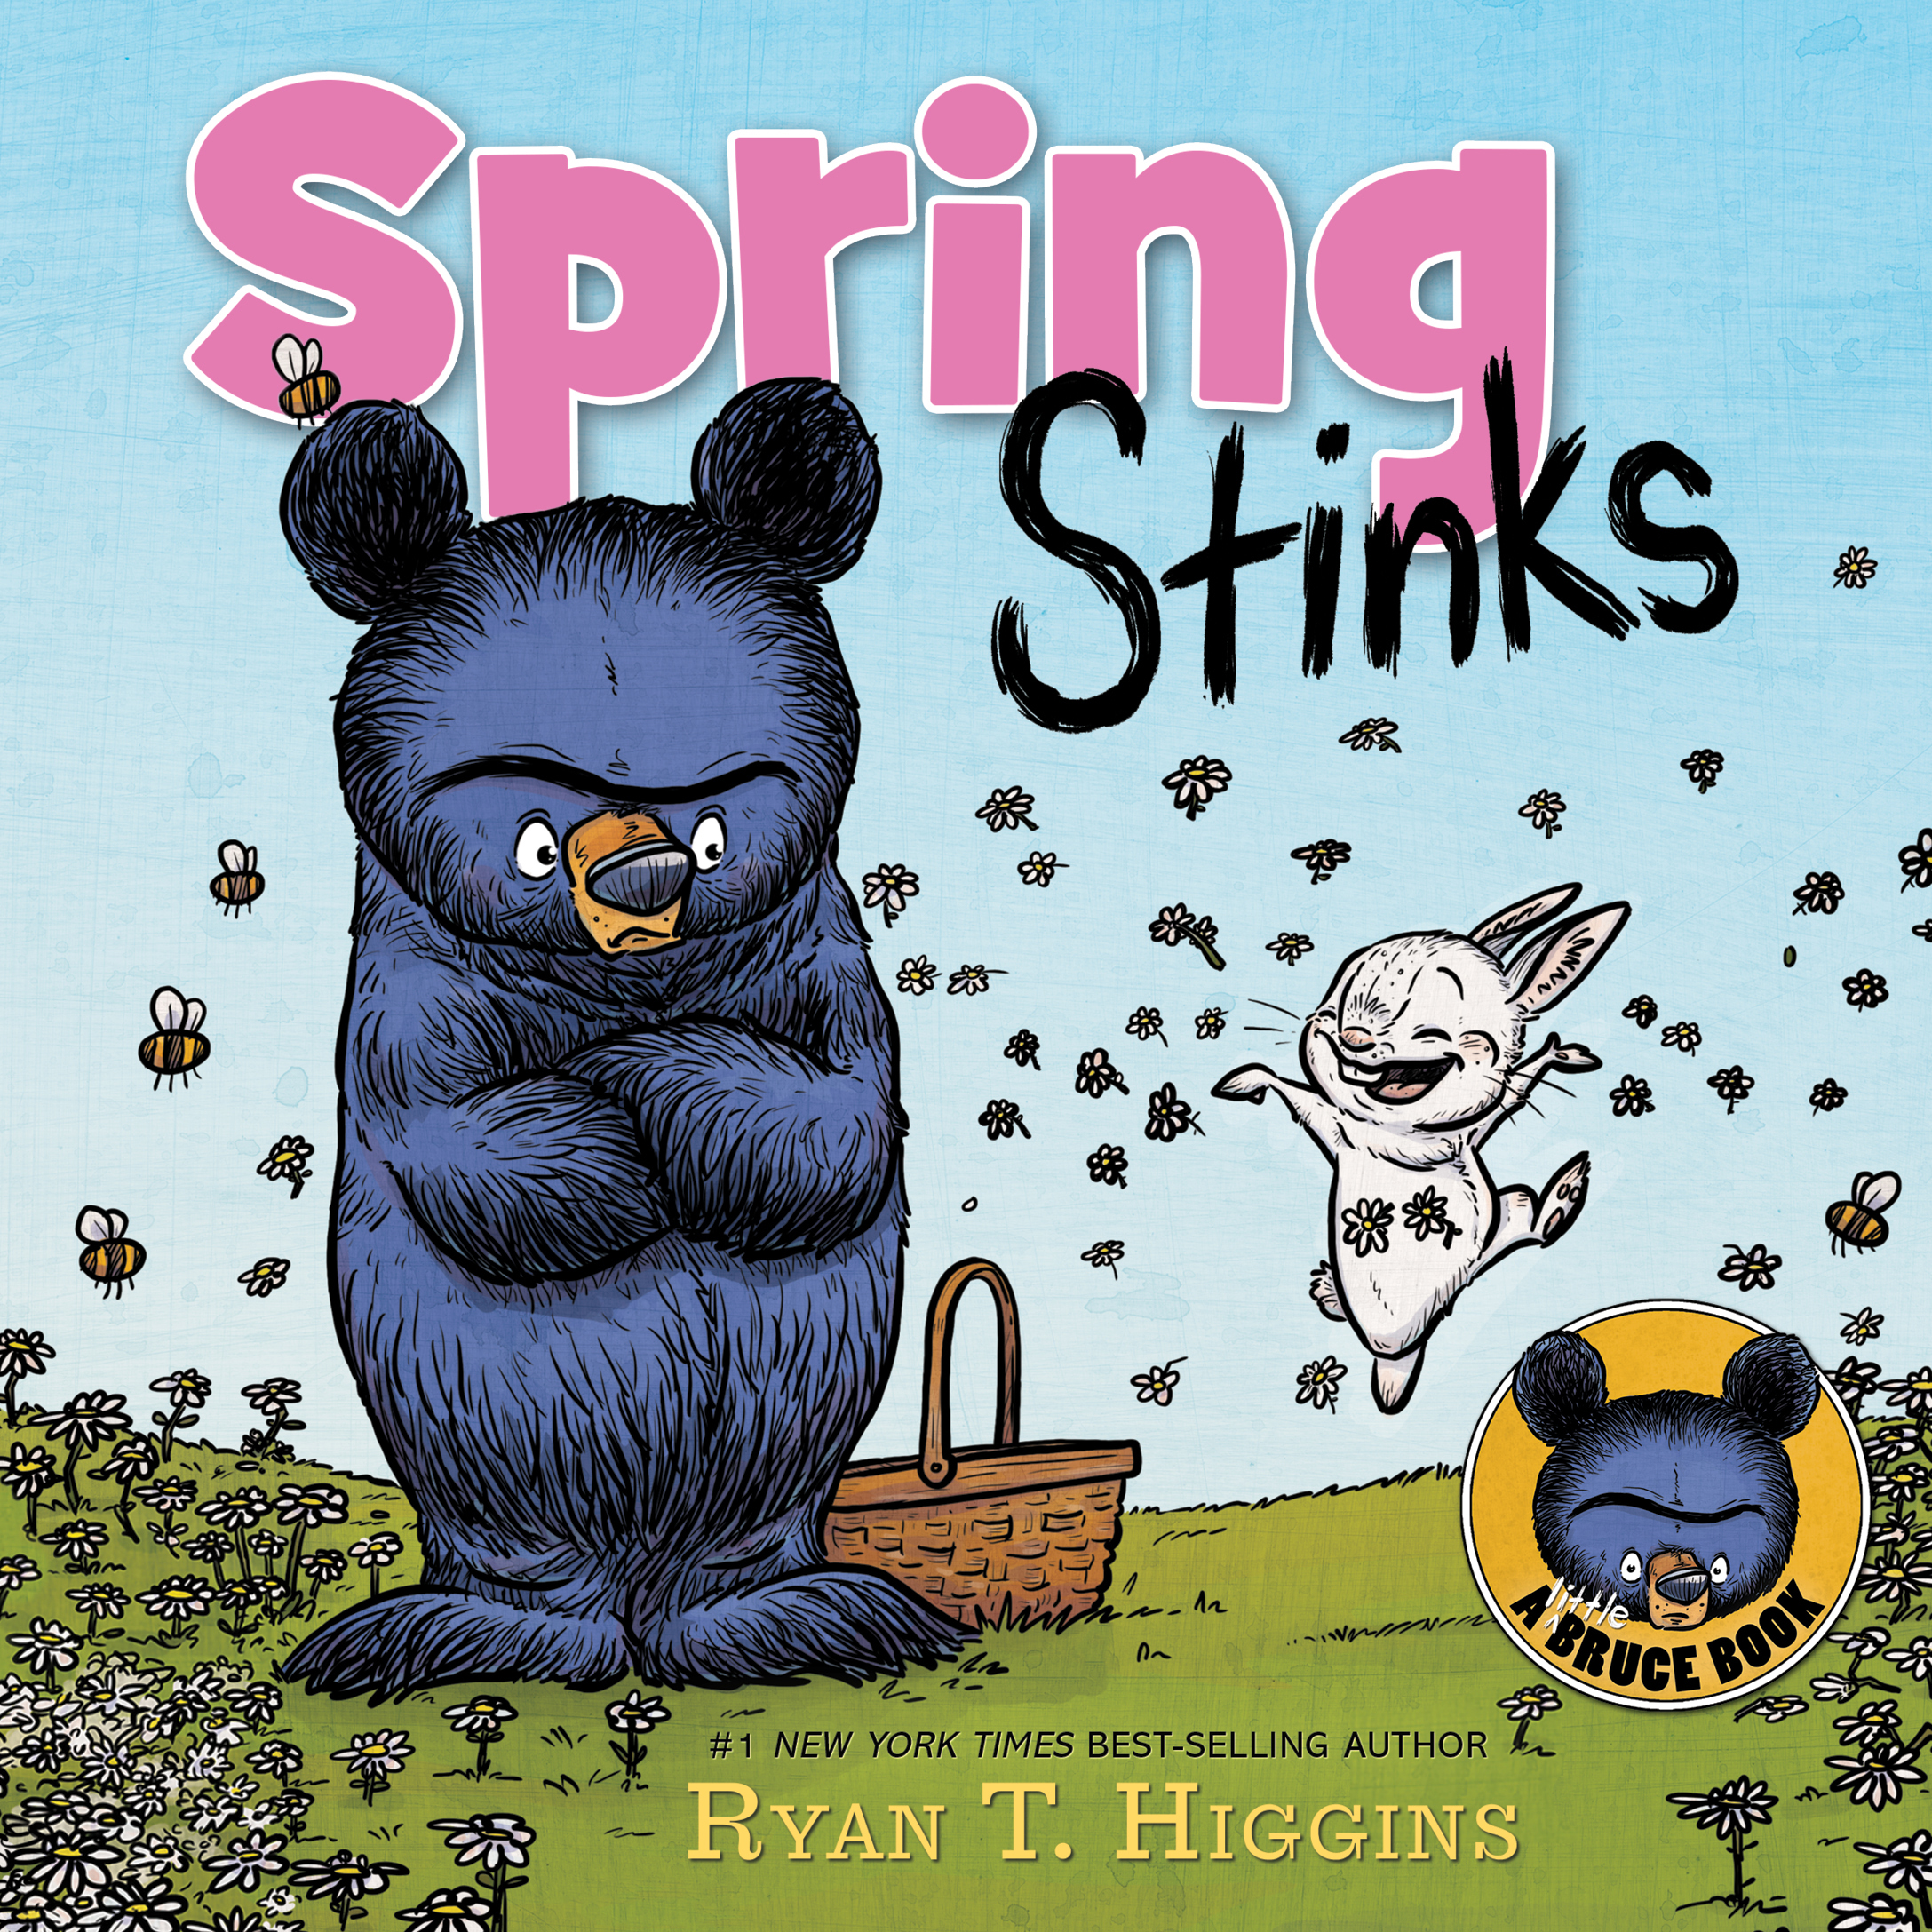 Virtual event with Ryan T. Higgins/Spring Stinks